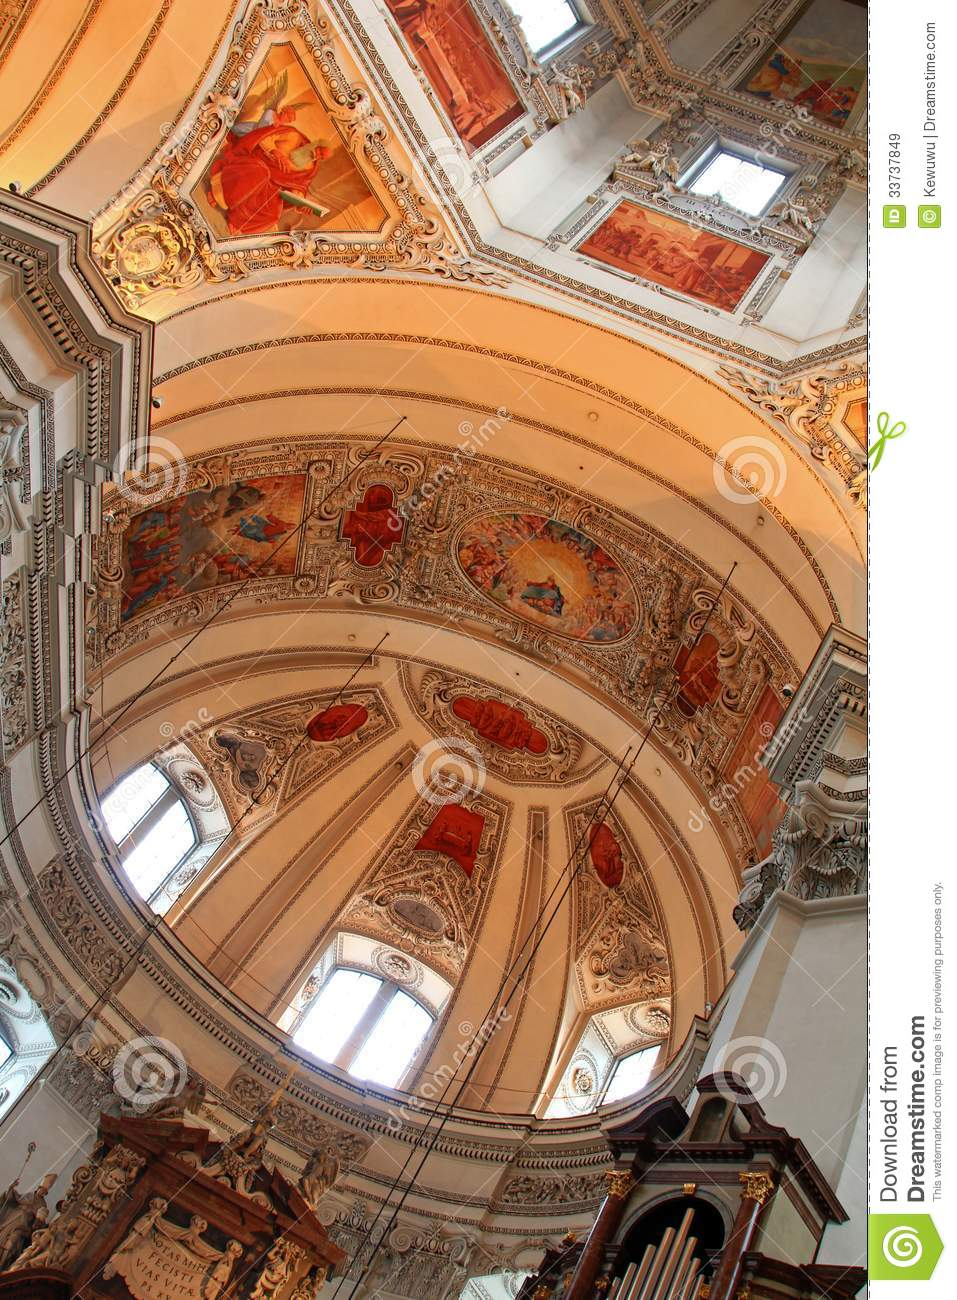 Ceiling at the Salzburg Cathedral (Salzburger Dom)